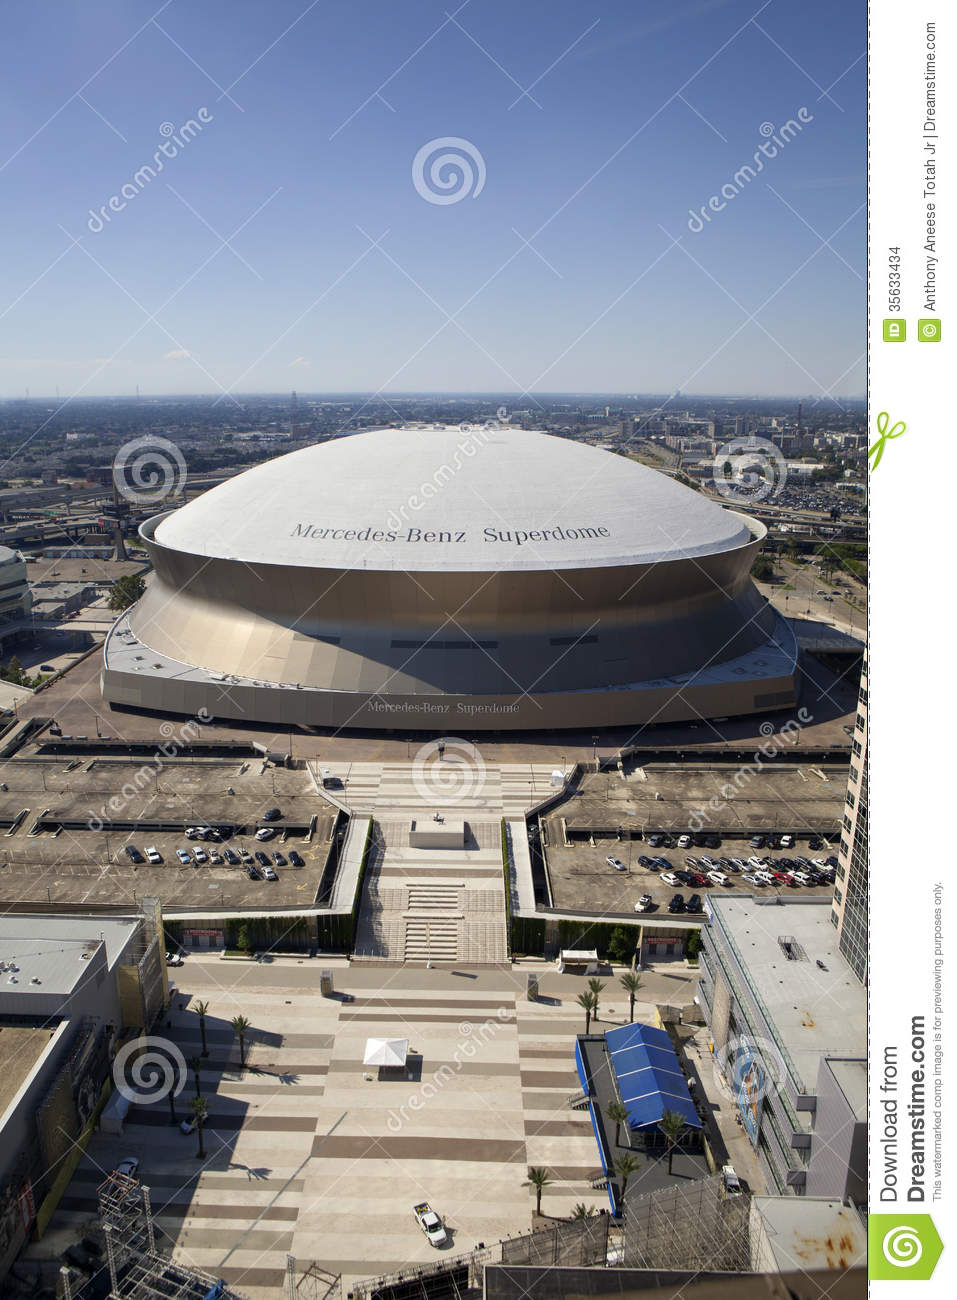 Superdome new orleans louisiana editorial stock image for Mercedes benz in louisiana